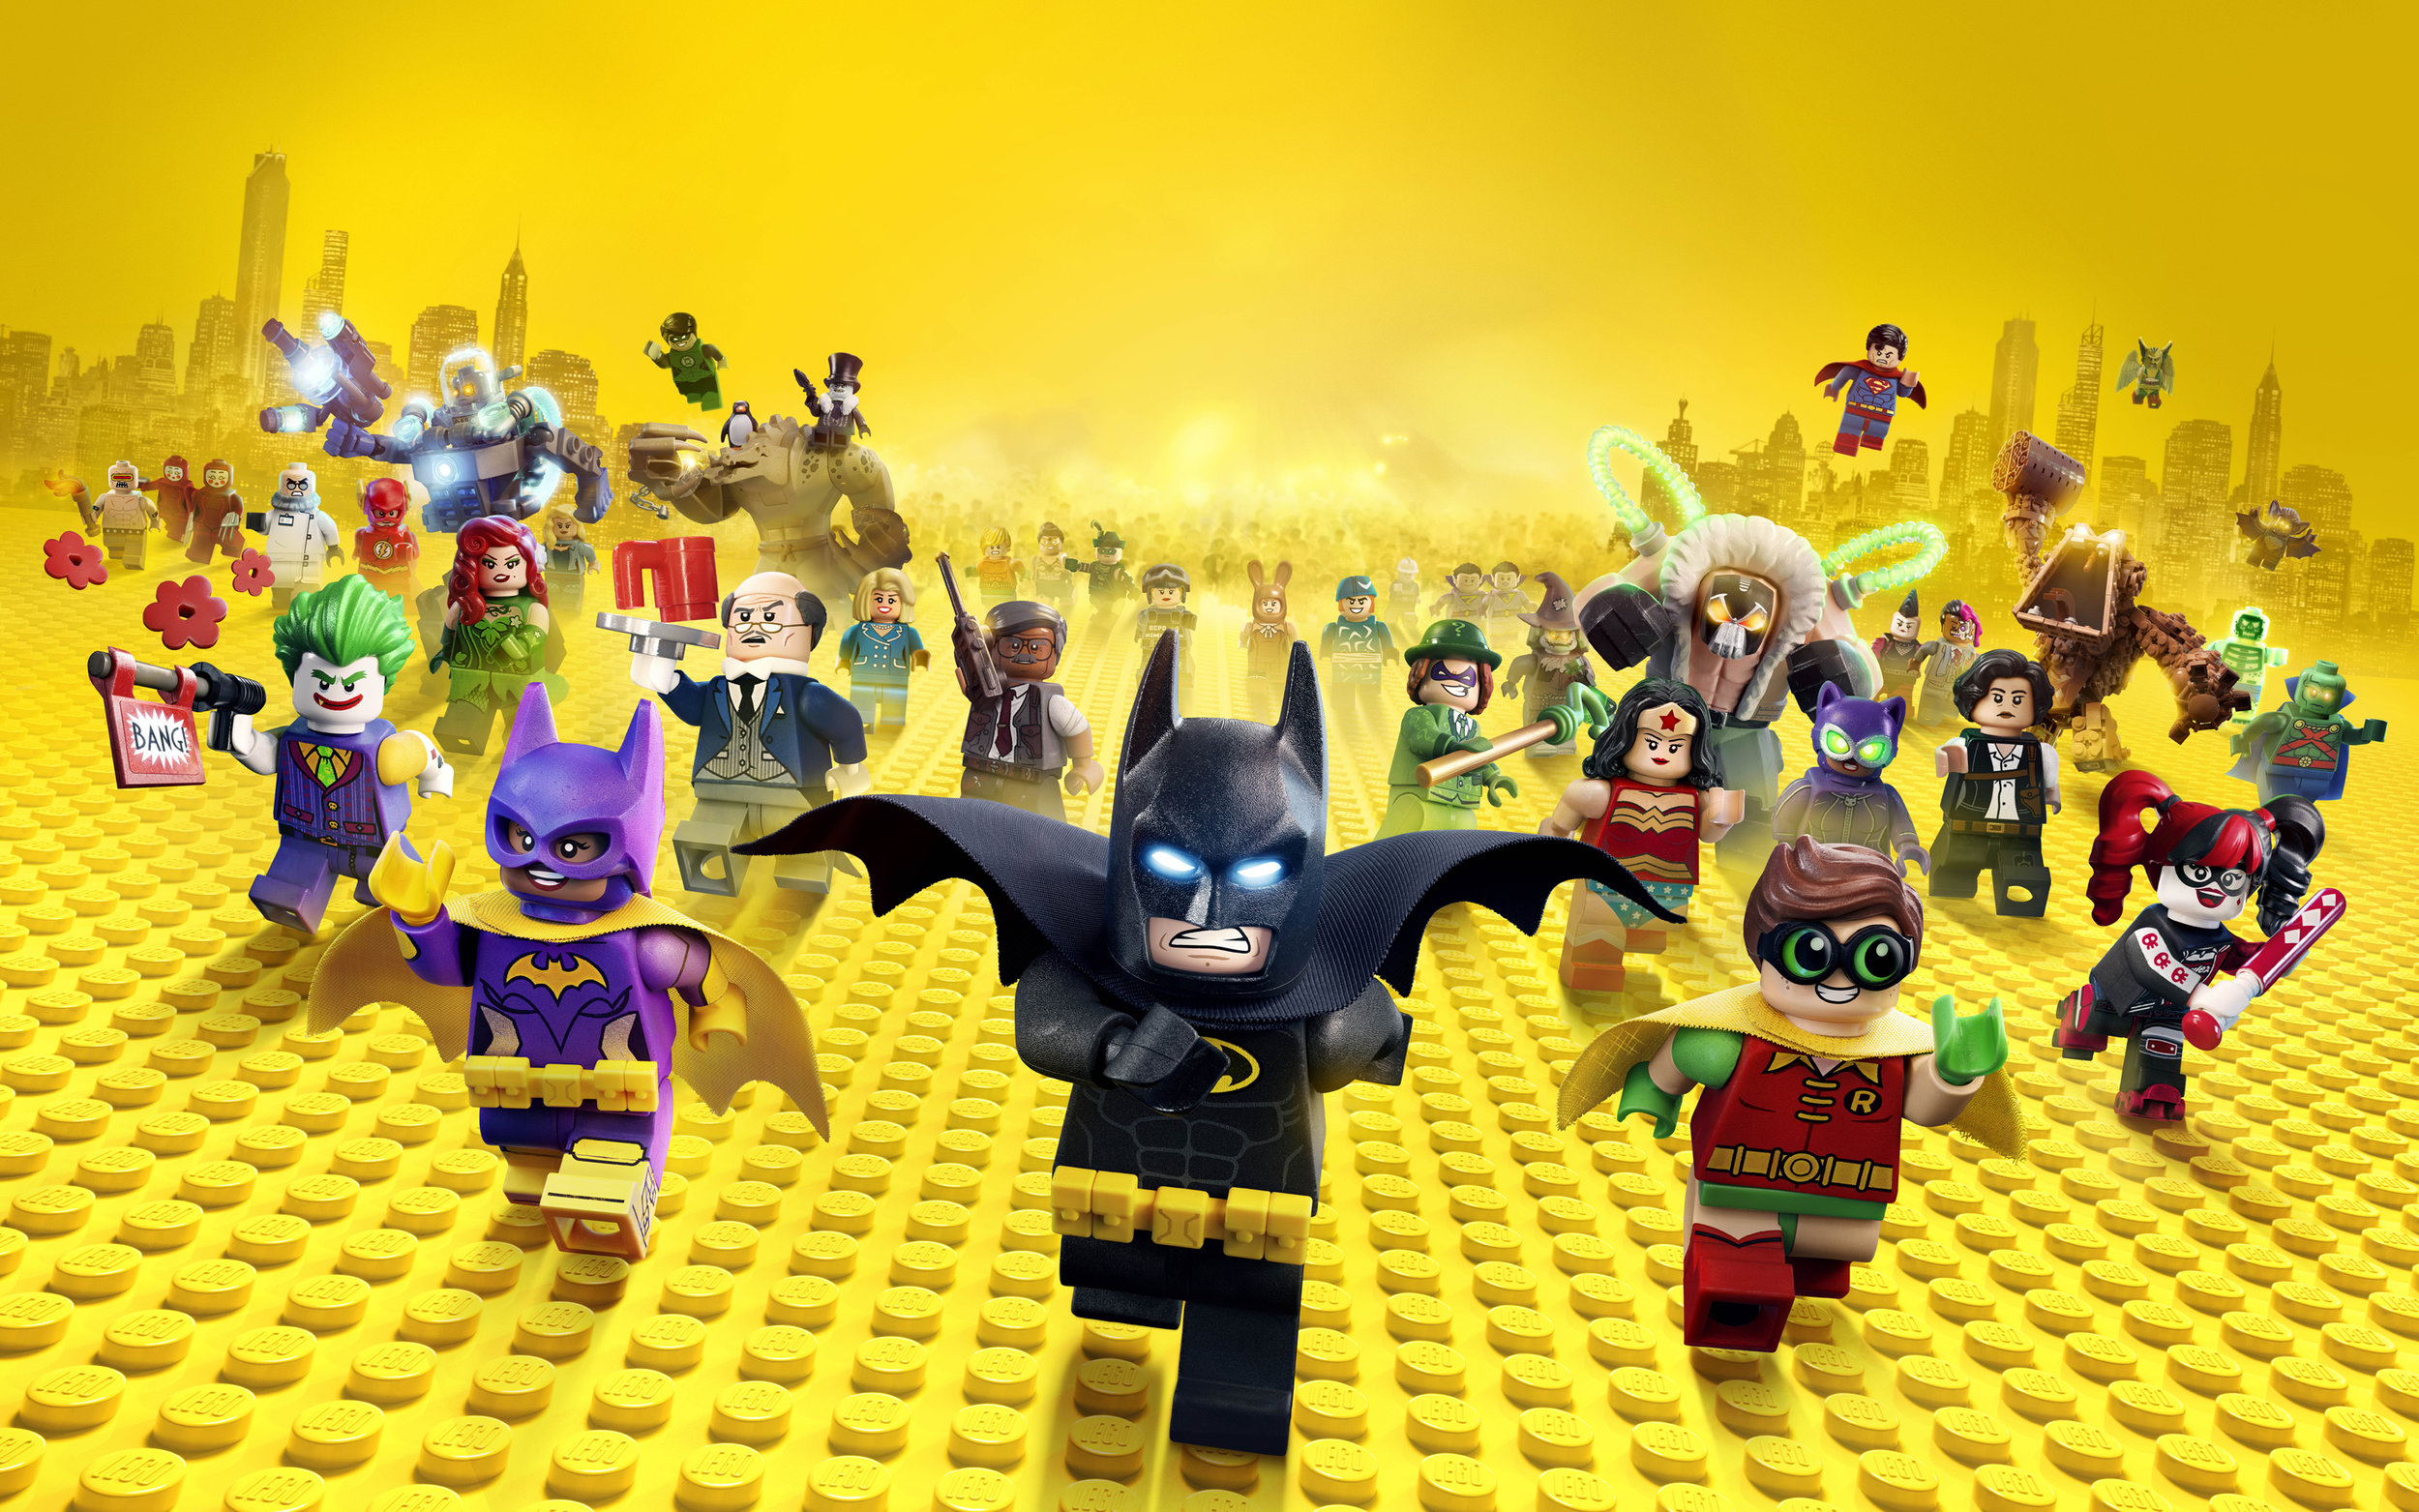 LEGO Batman along with tons of other characters in the film you will probably recognize.